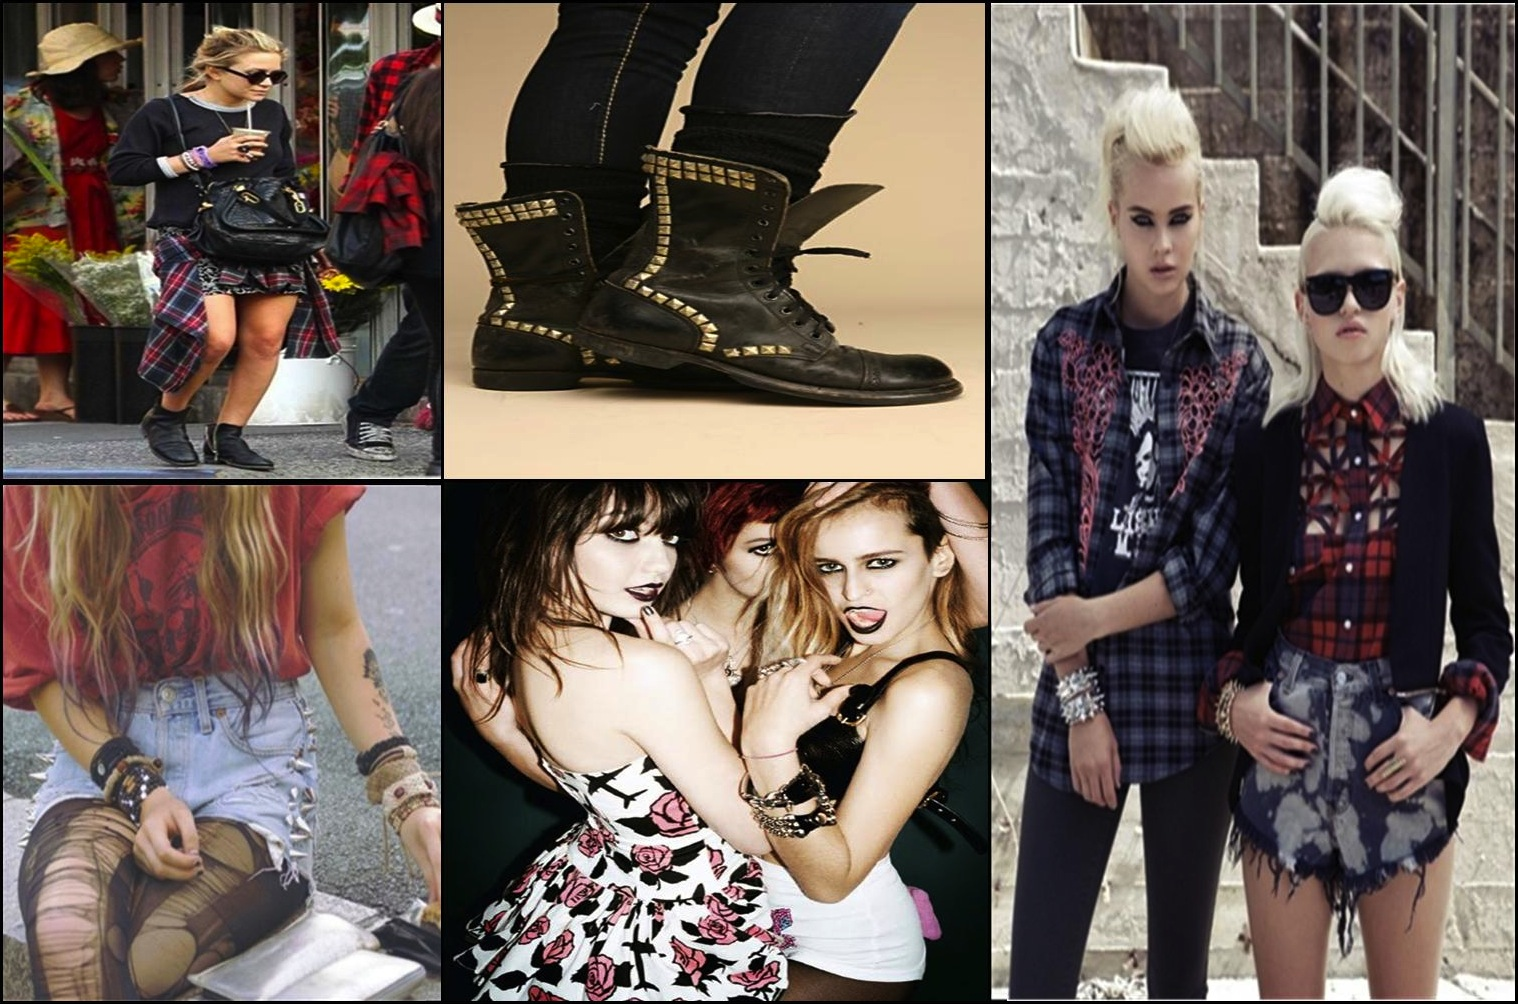 90s revival grunge is back in action the fashion foot